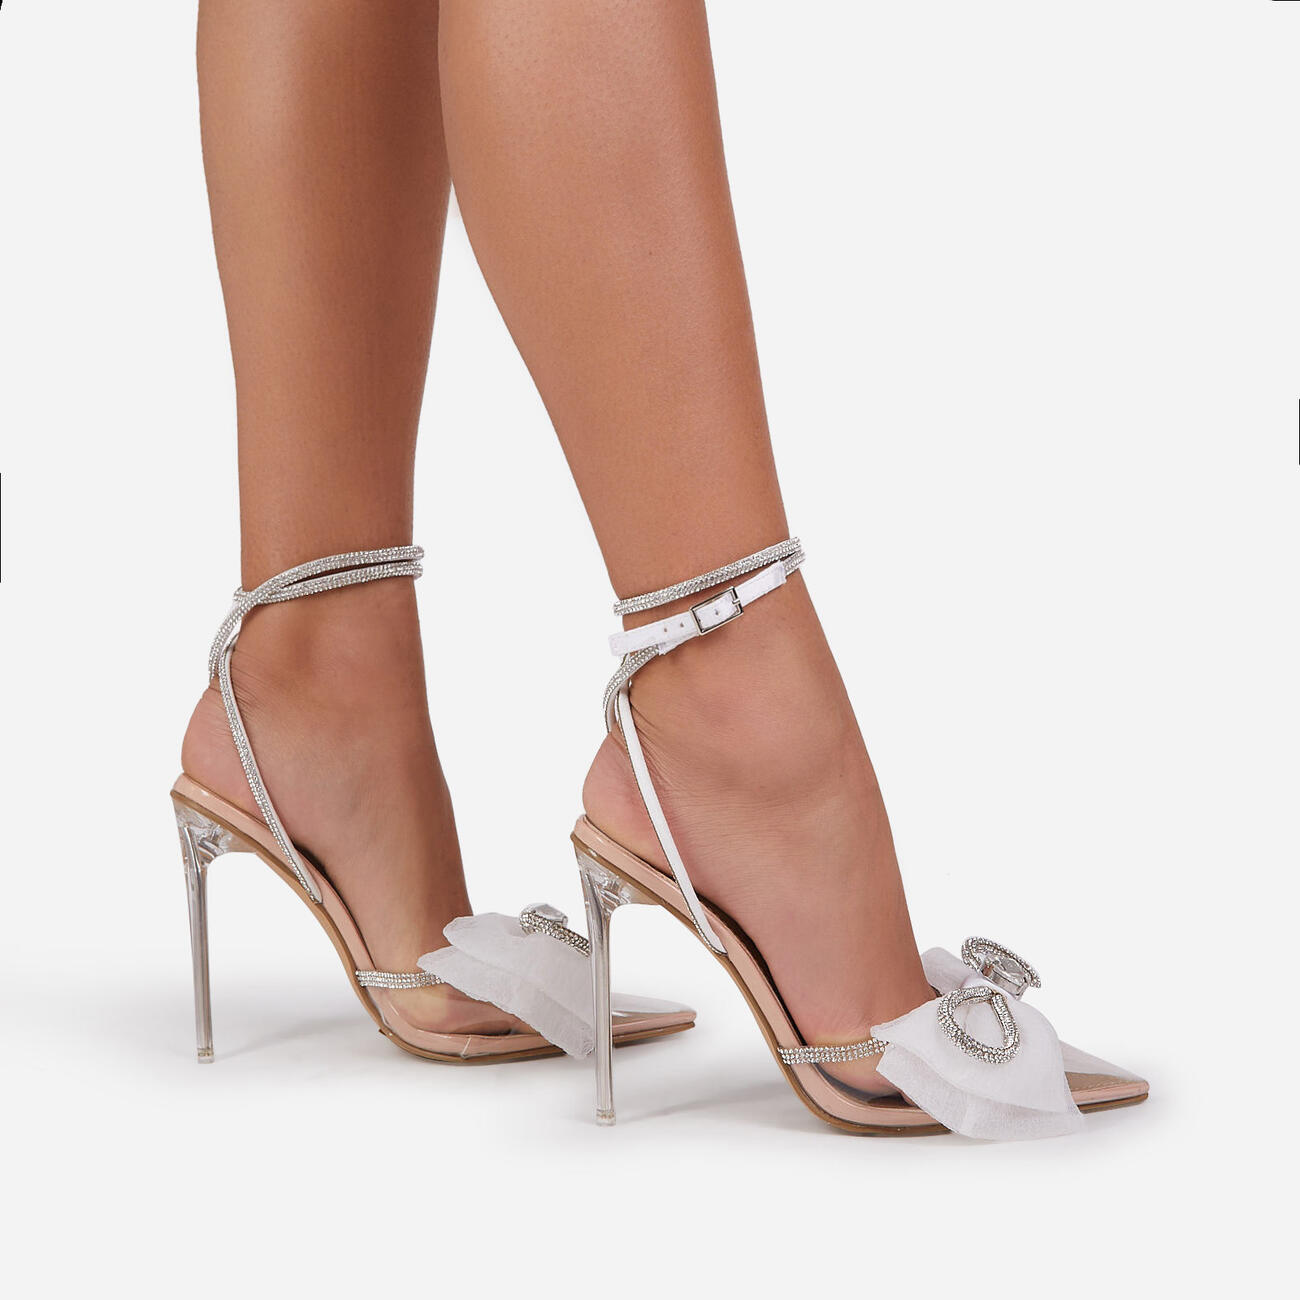 Chriselle Bow Detail Diamante Lace Up Clear Perspex Heel In Nude Patent Image 3